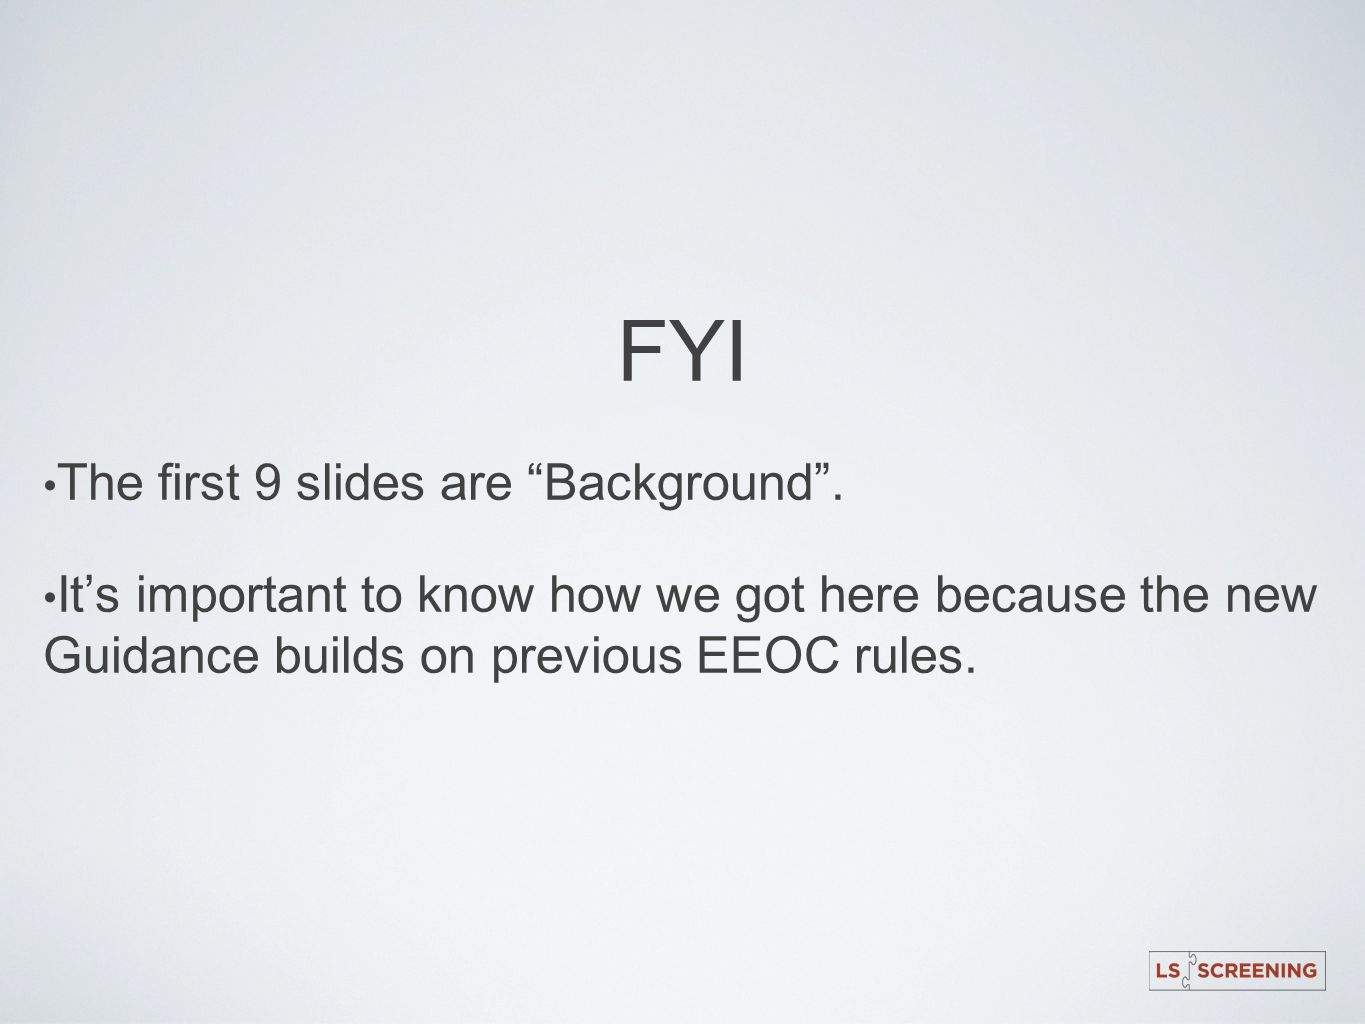 FYI The first 9 slides are Background .